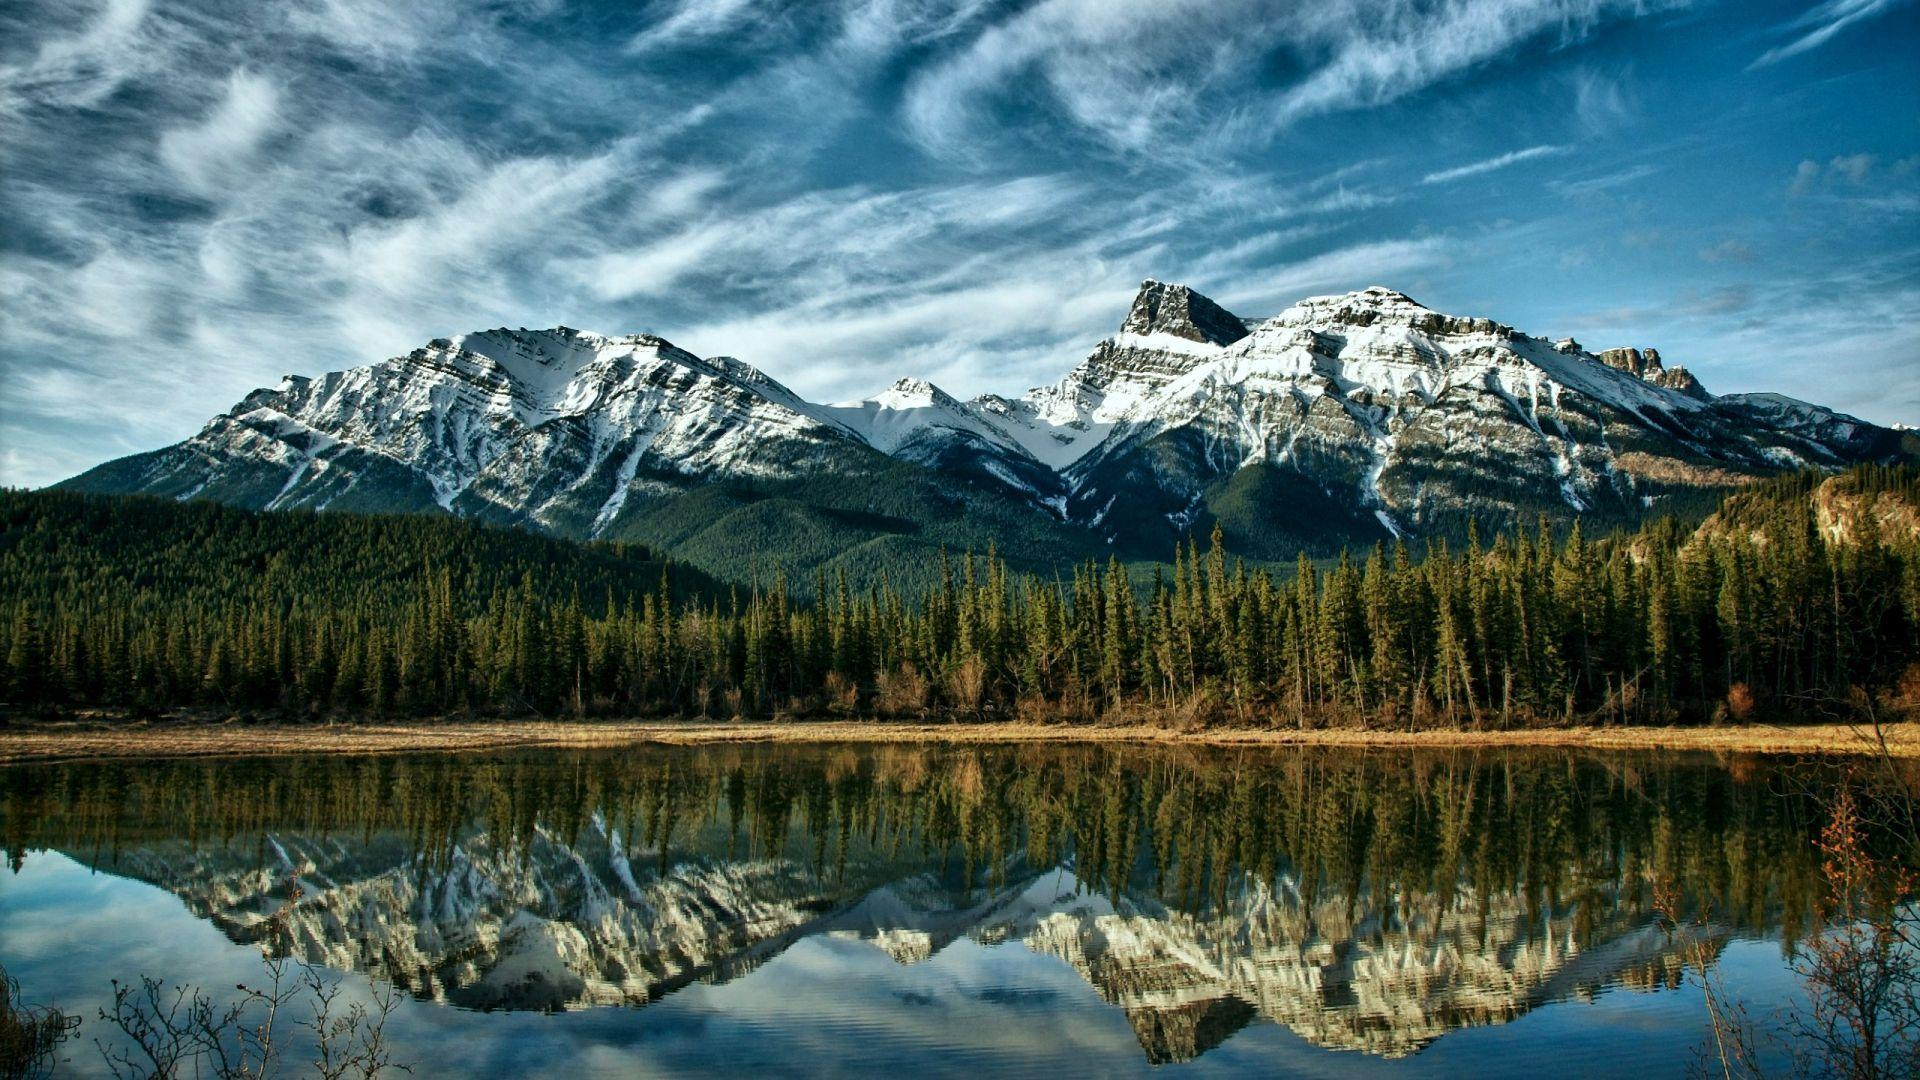 Canada Wallpapers: Find best latest Canada Wallpapers in HD for your